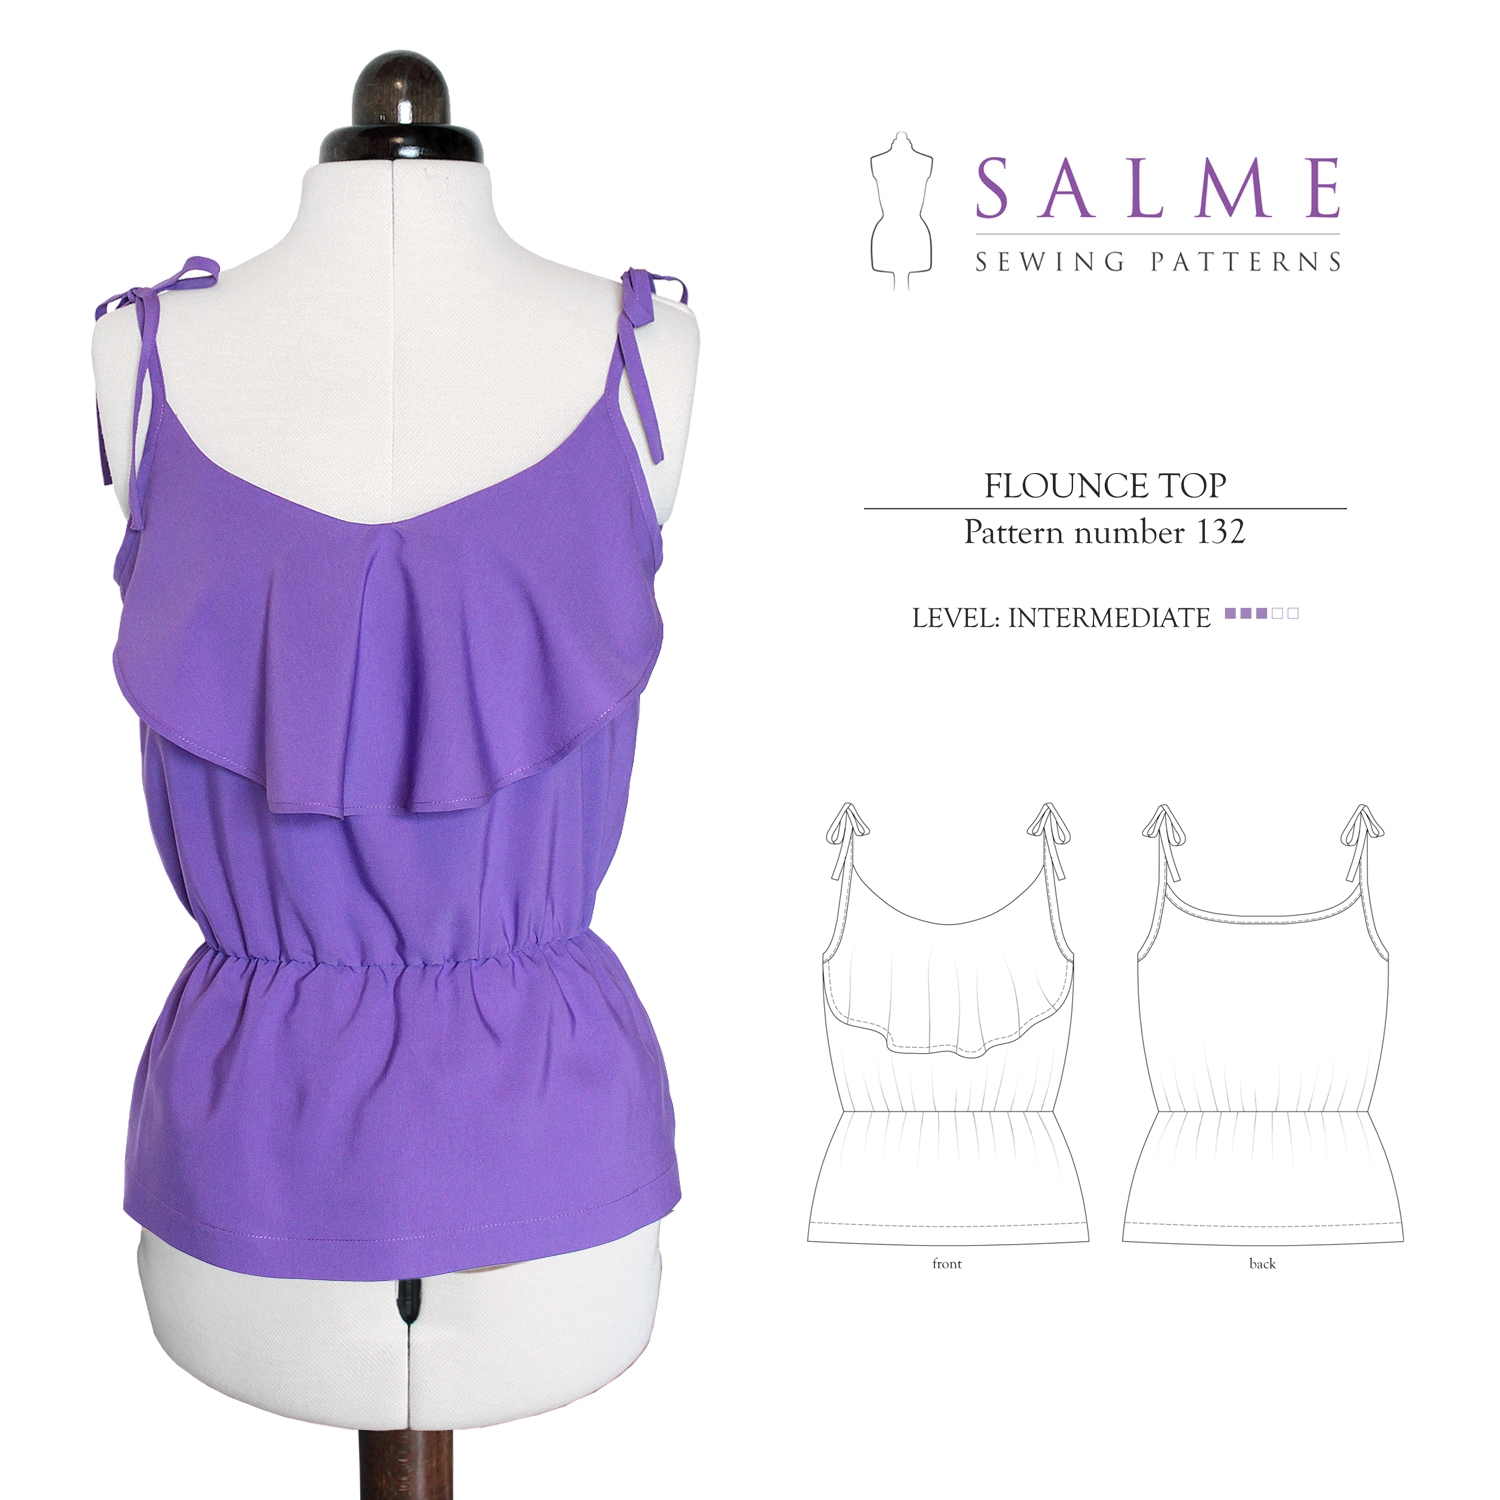 Salme Sewing Patterns Flounce Top Downloadable Pattern 132